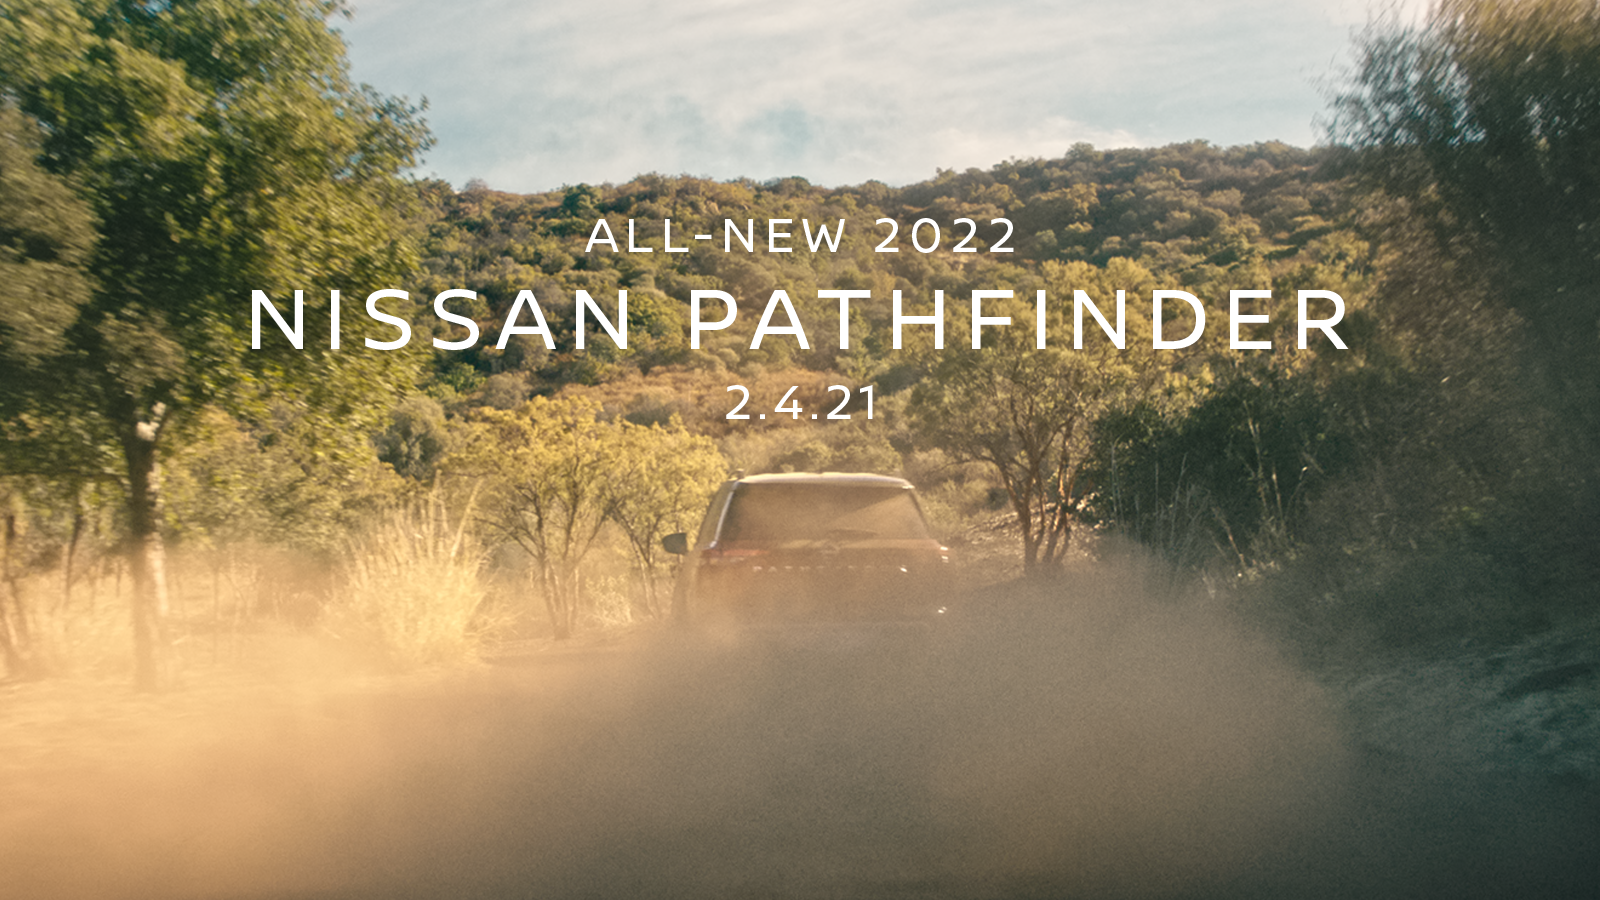 All-new 2022 Nissan Pathfinder Teaser